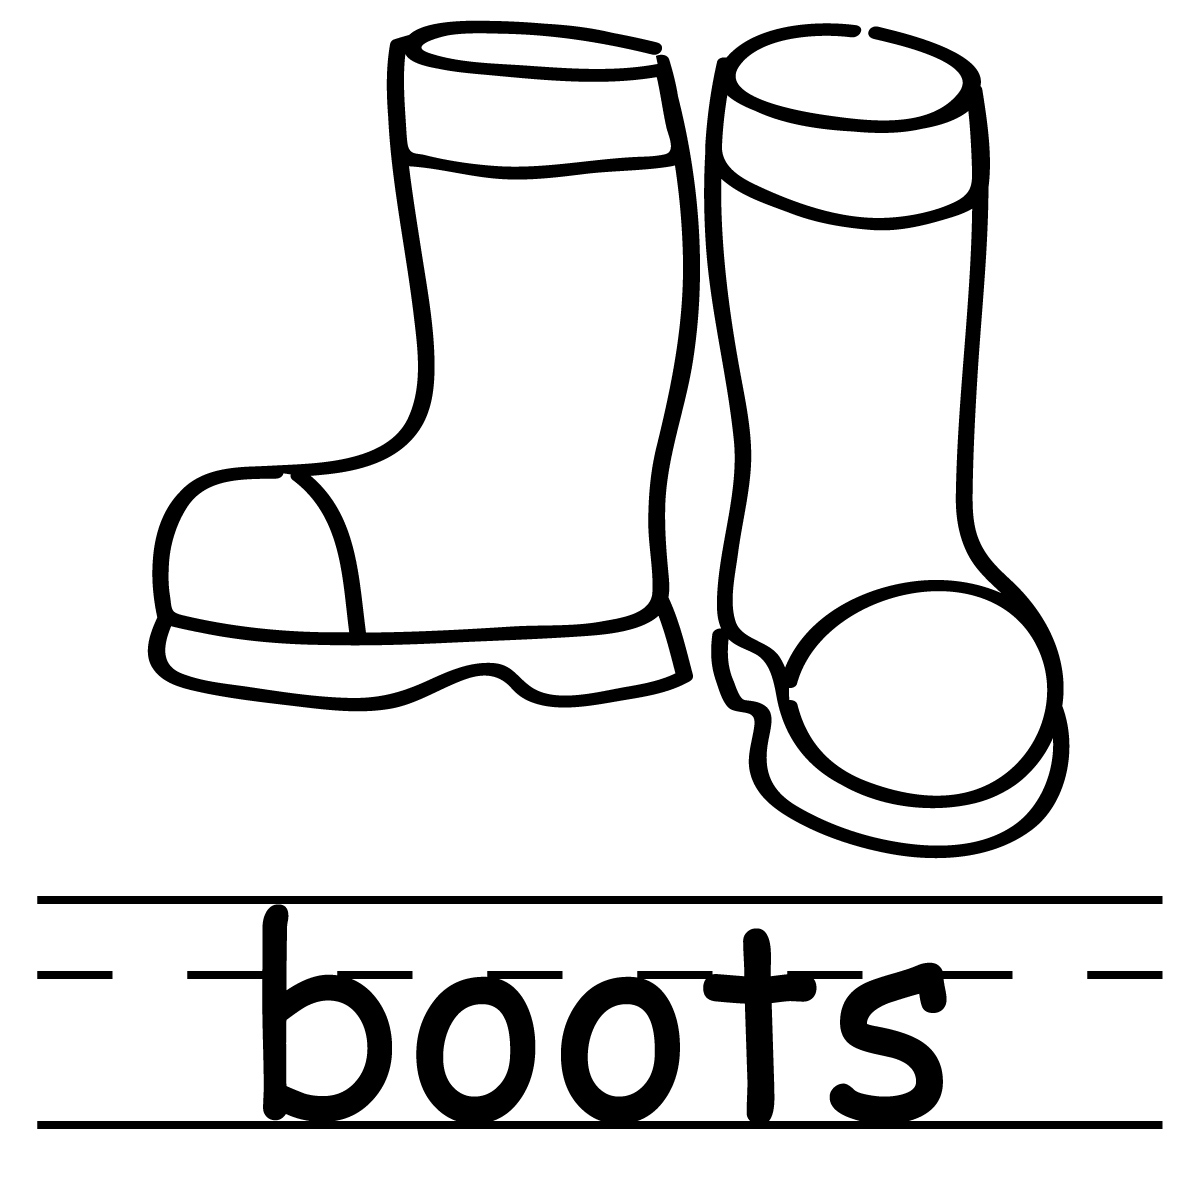 1200x1200 Boots Clipart Firefighter Boot